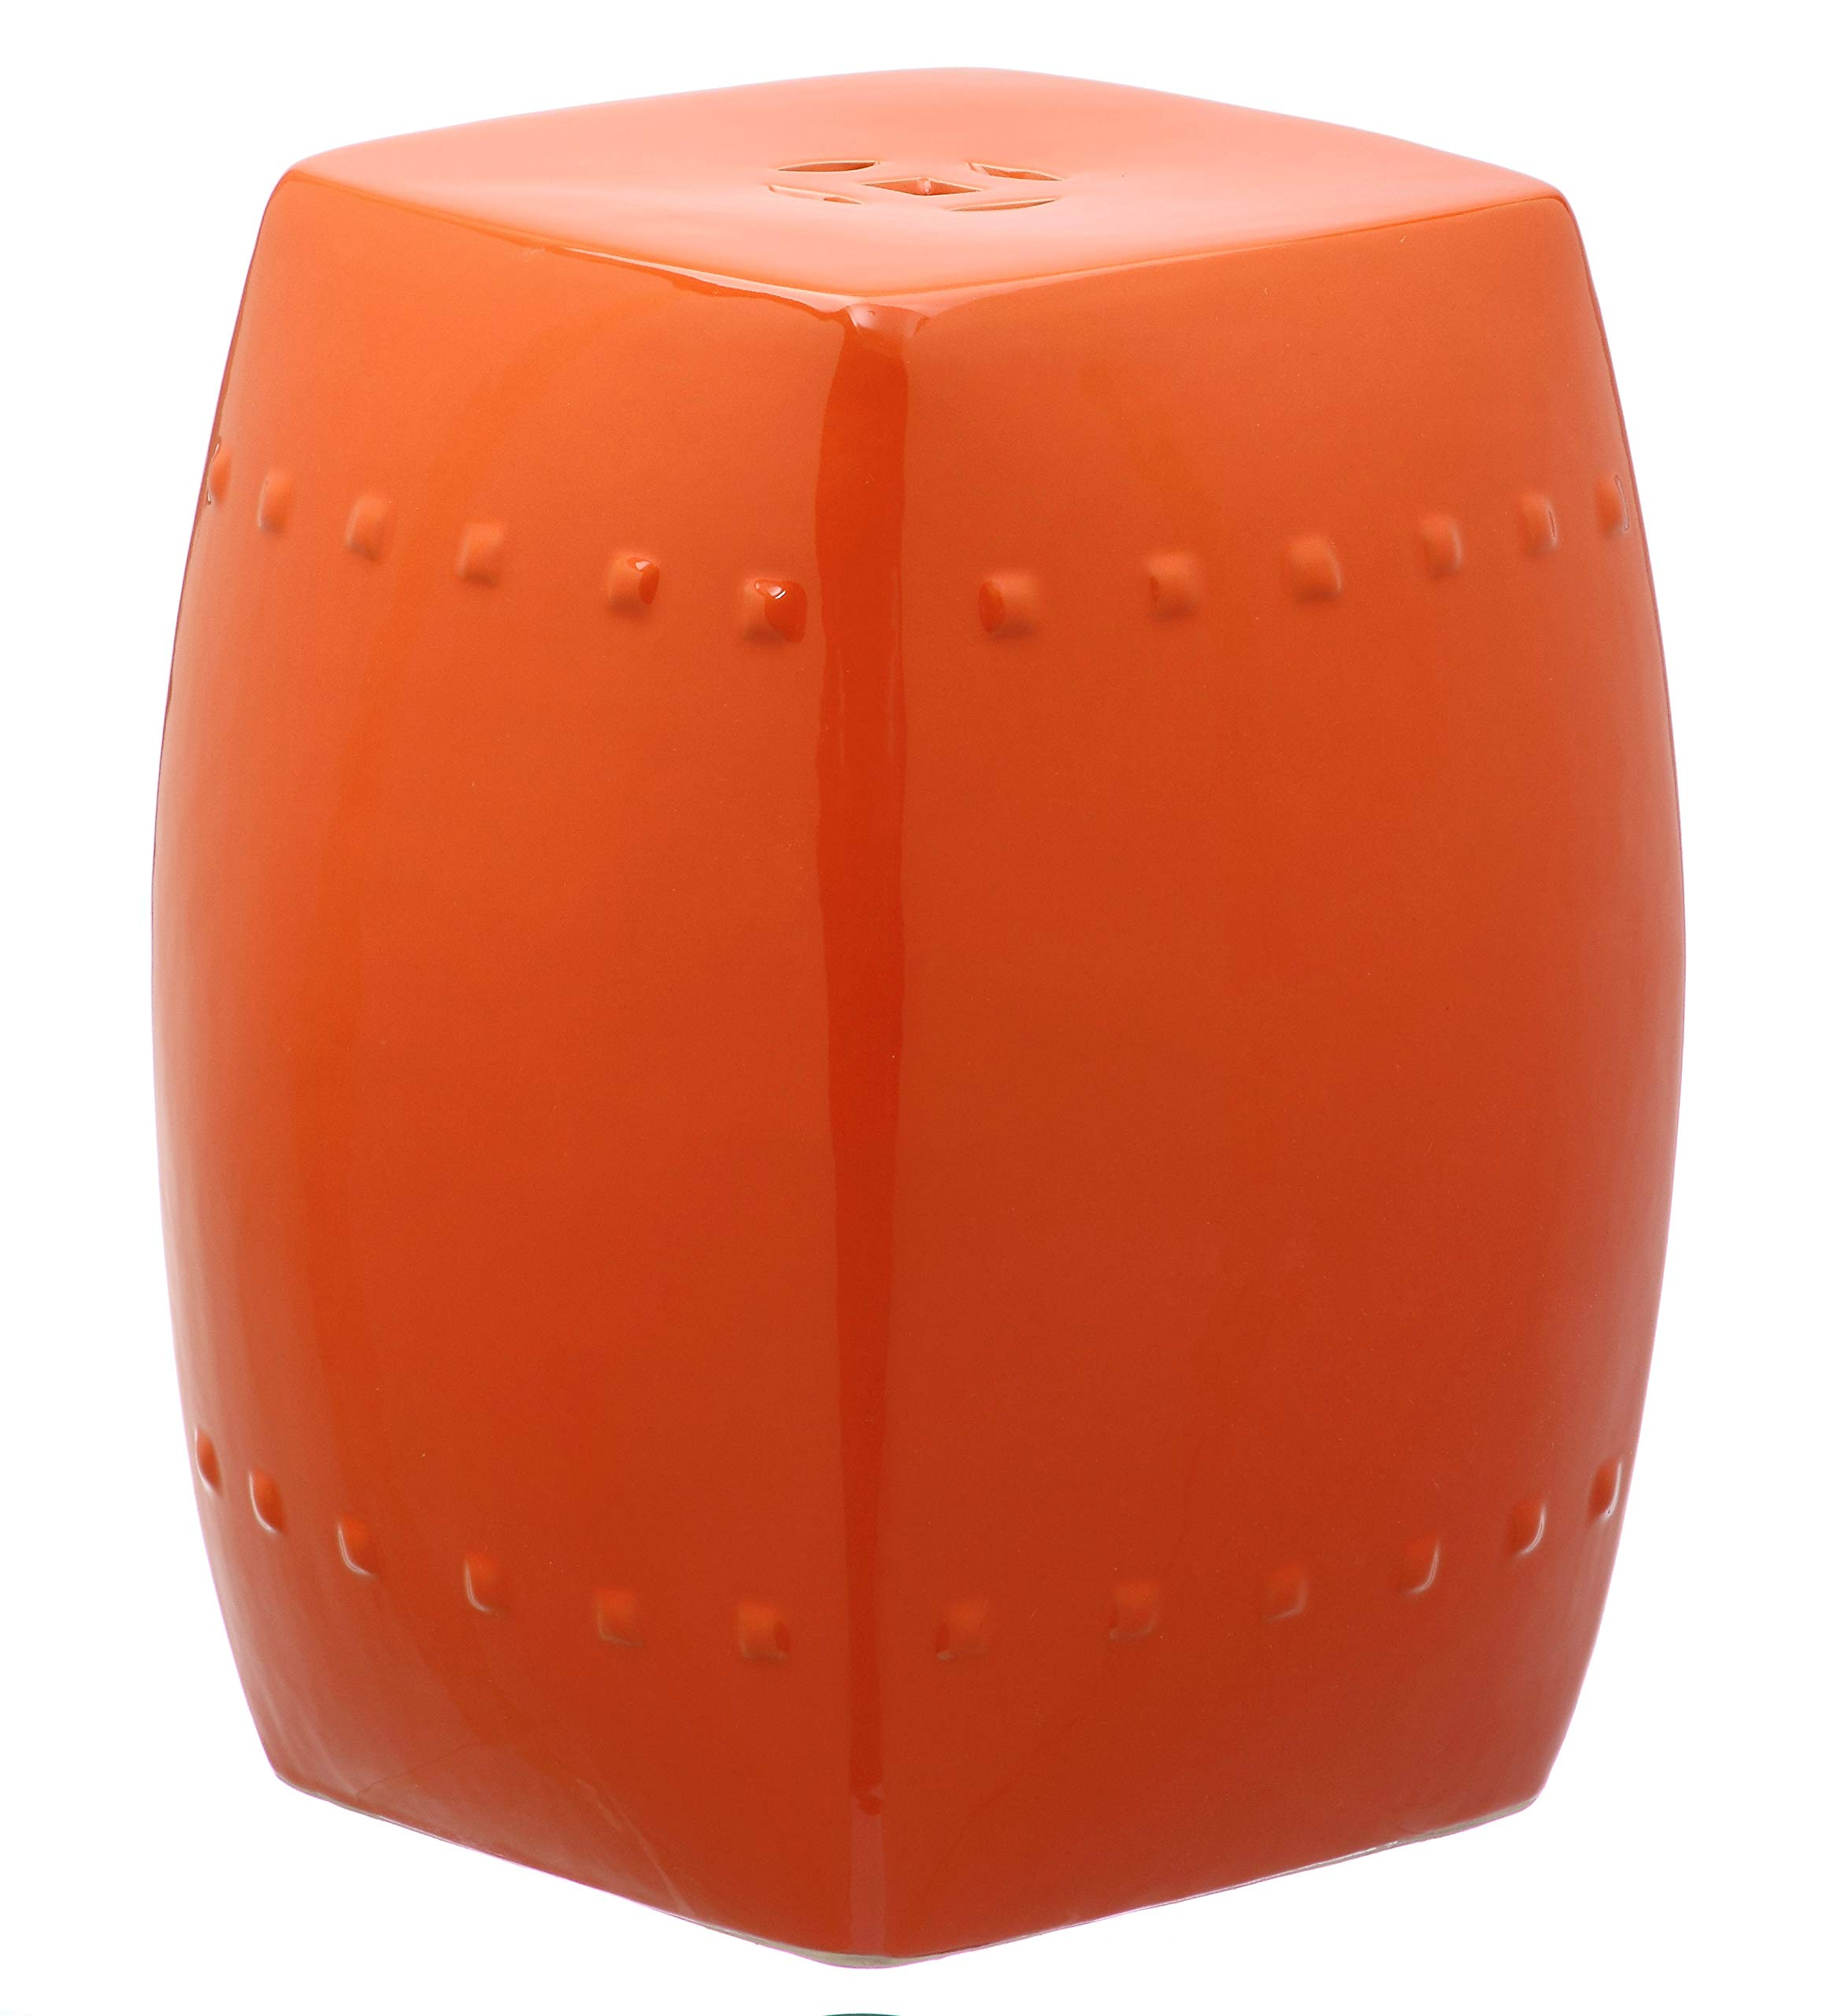 Safavieh Castle Gardens Collection Villa Orange Glazed Ceramic Garden Stool by Safavieh